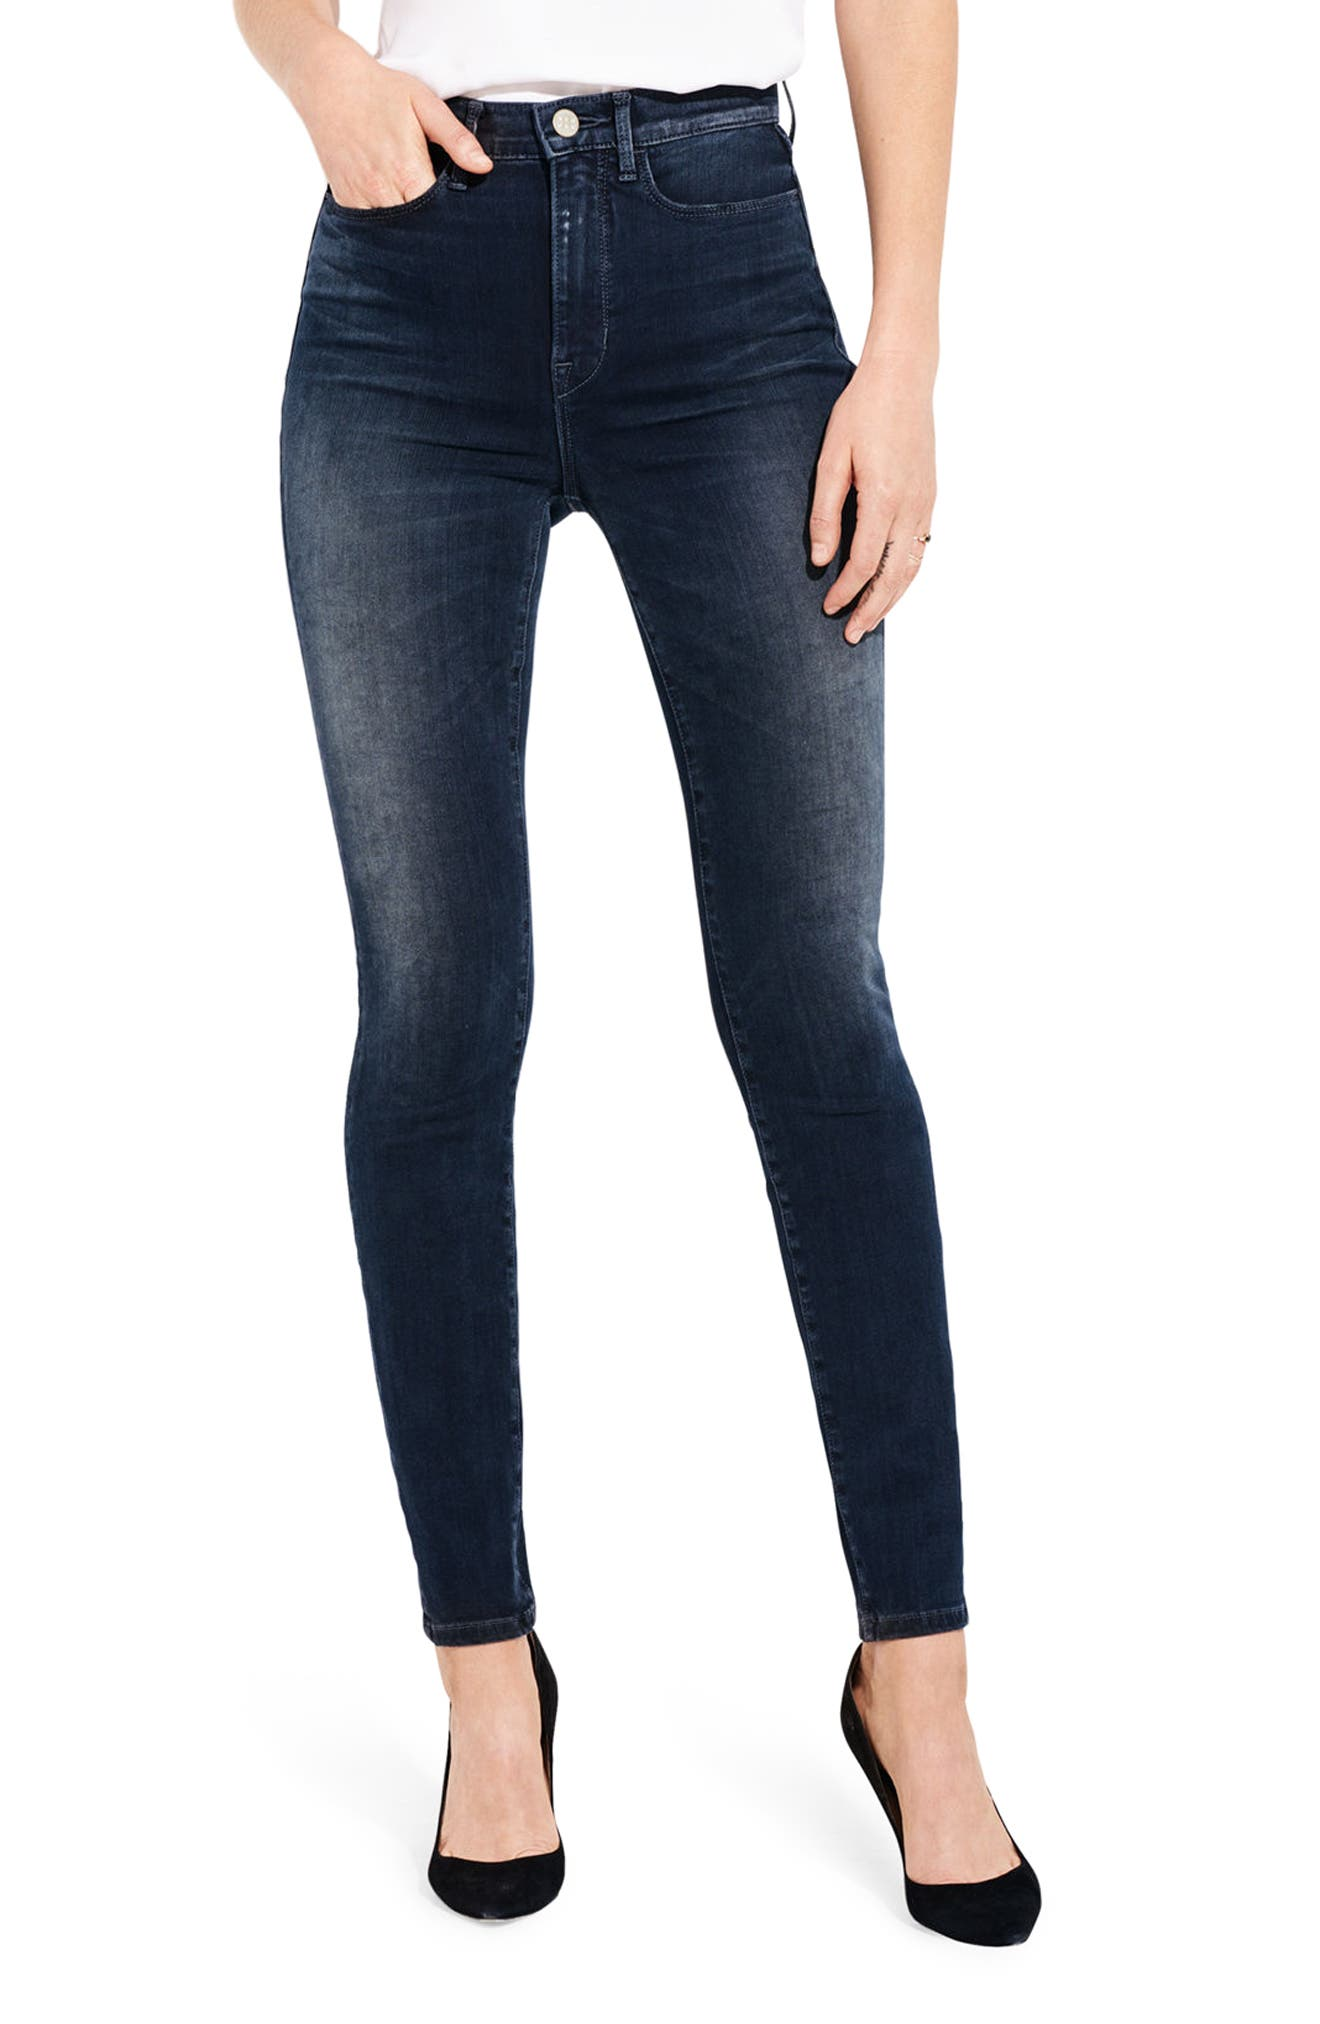 Alternate Image 1 Selected - AYR The Hi Rise High Waist Skinny Jeans (Night of Joy)